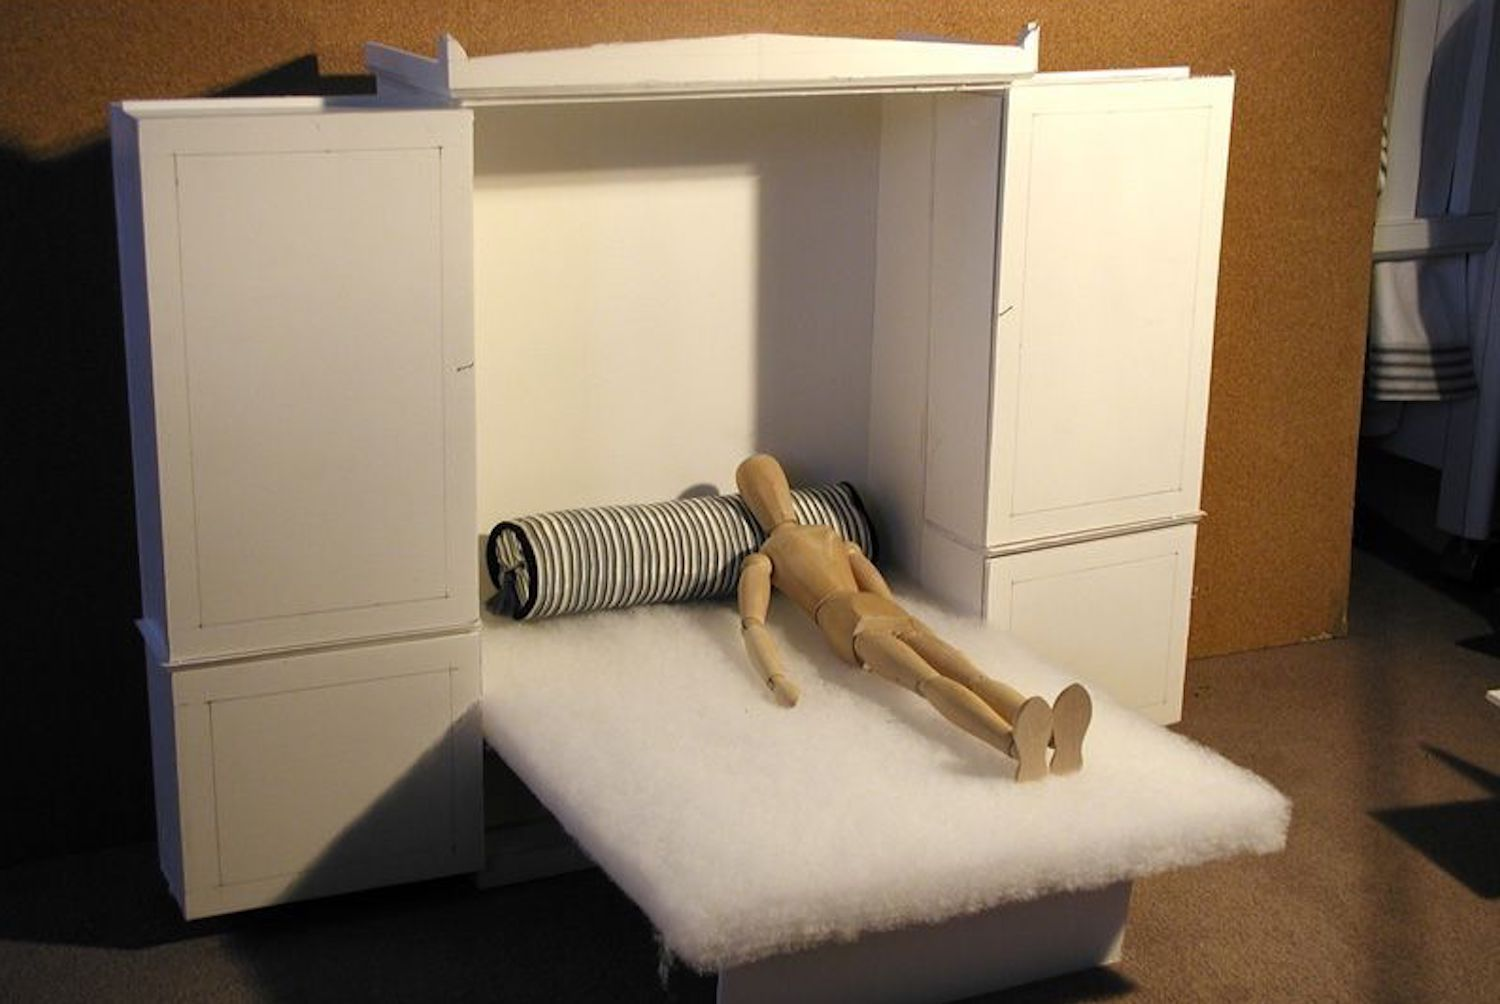 Model of bed folding out of a closet